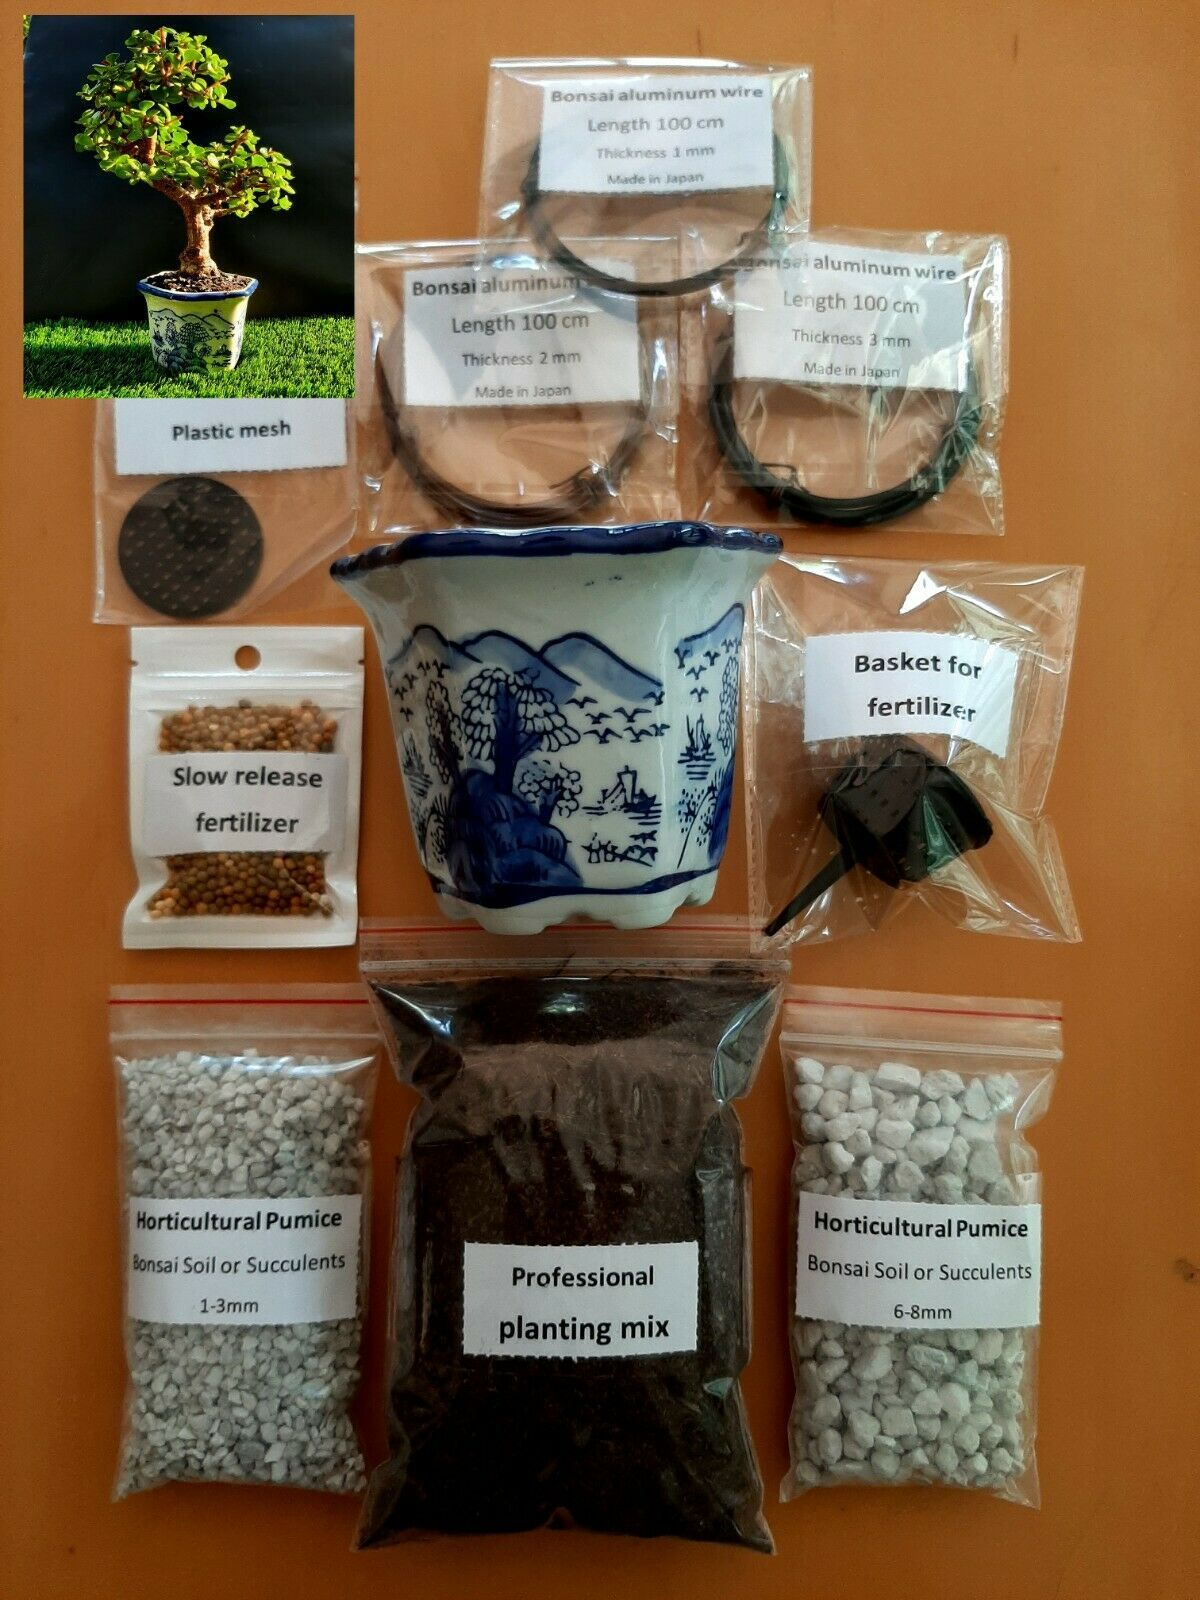 Kit for bonsai and Succulents Perfect set - 11 items - $47.04